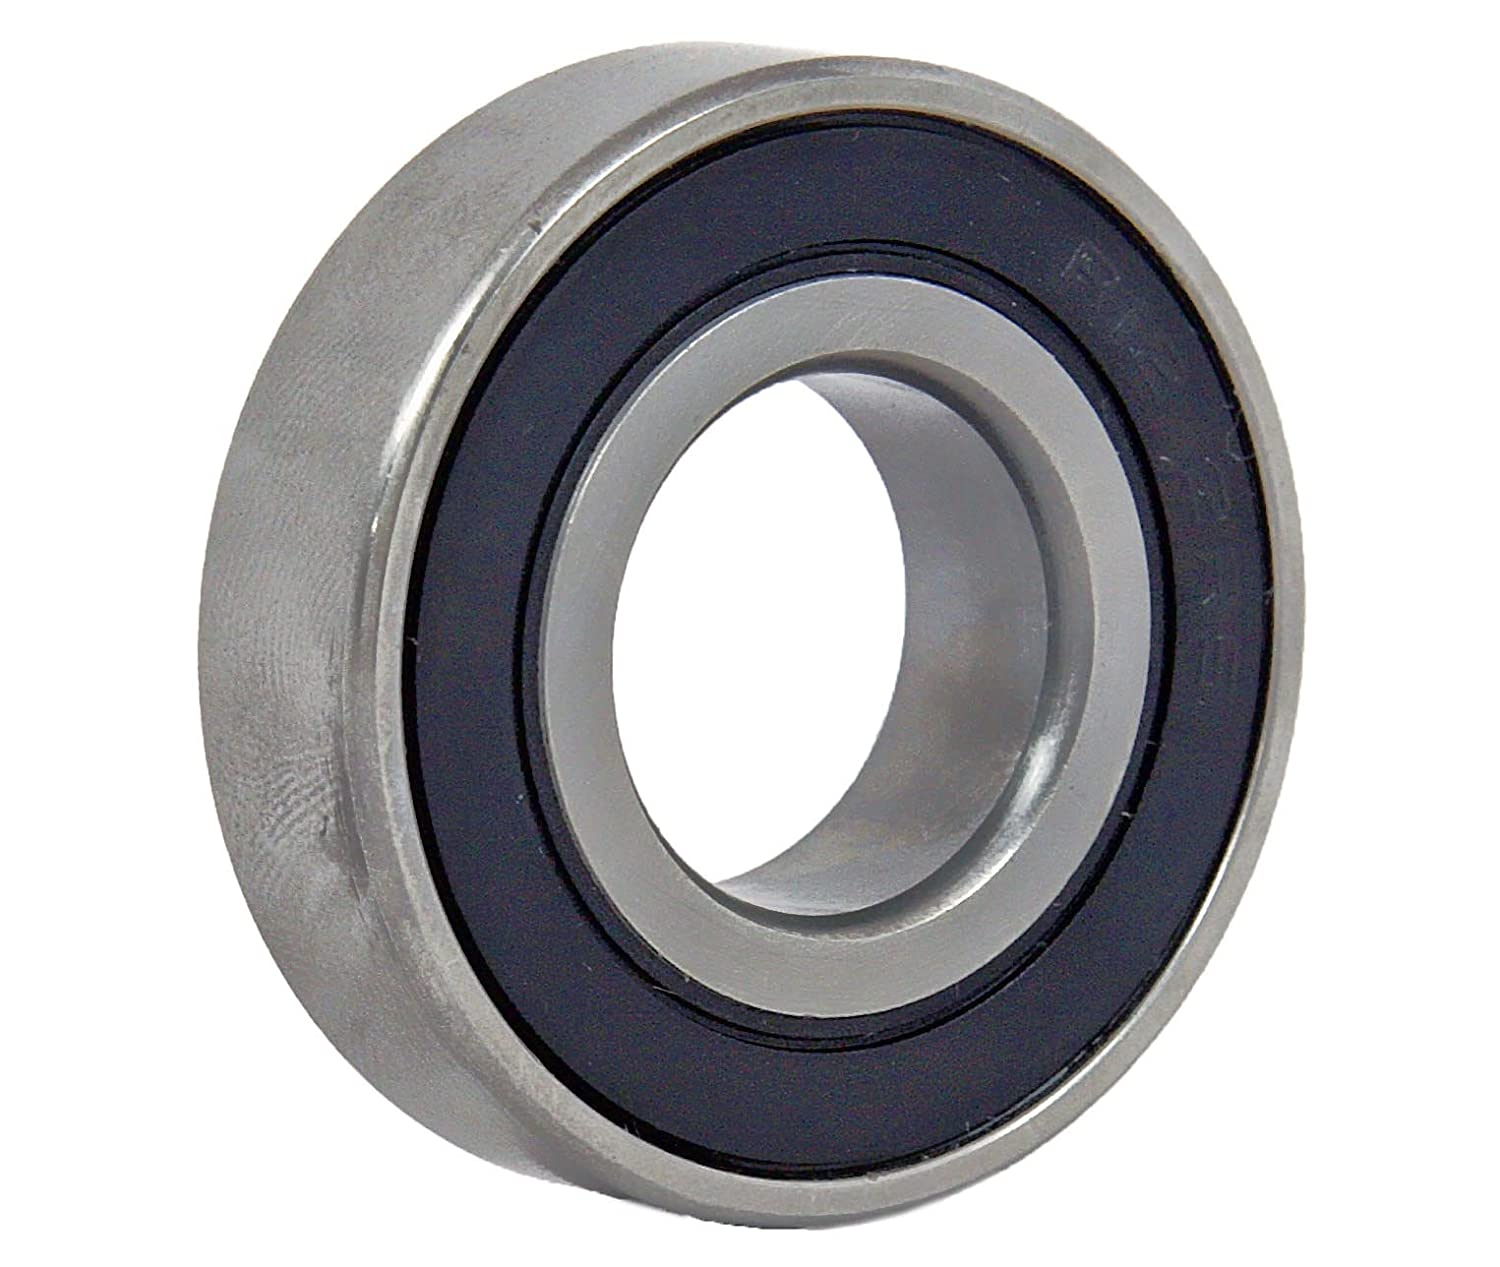 R12-2RS Sealed Bearing 3/4 x 1 5/8 x 7/16 inch Ball Bearings VXB Brand